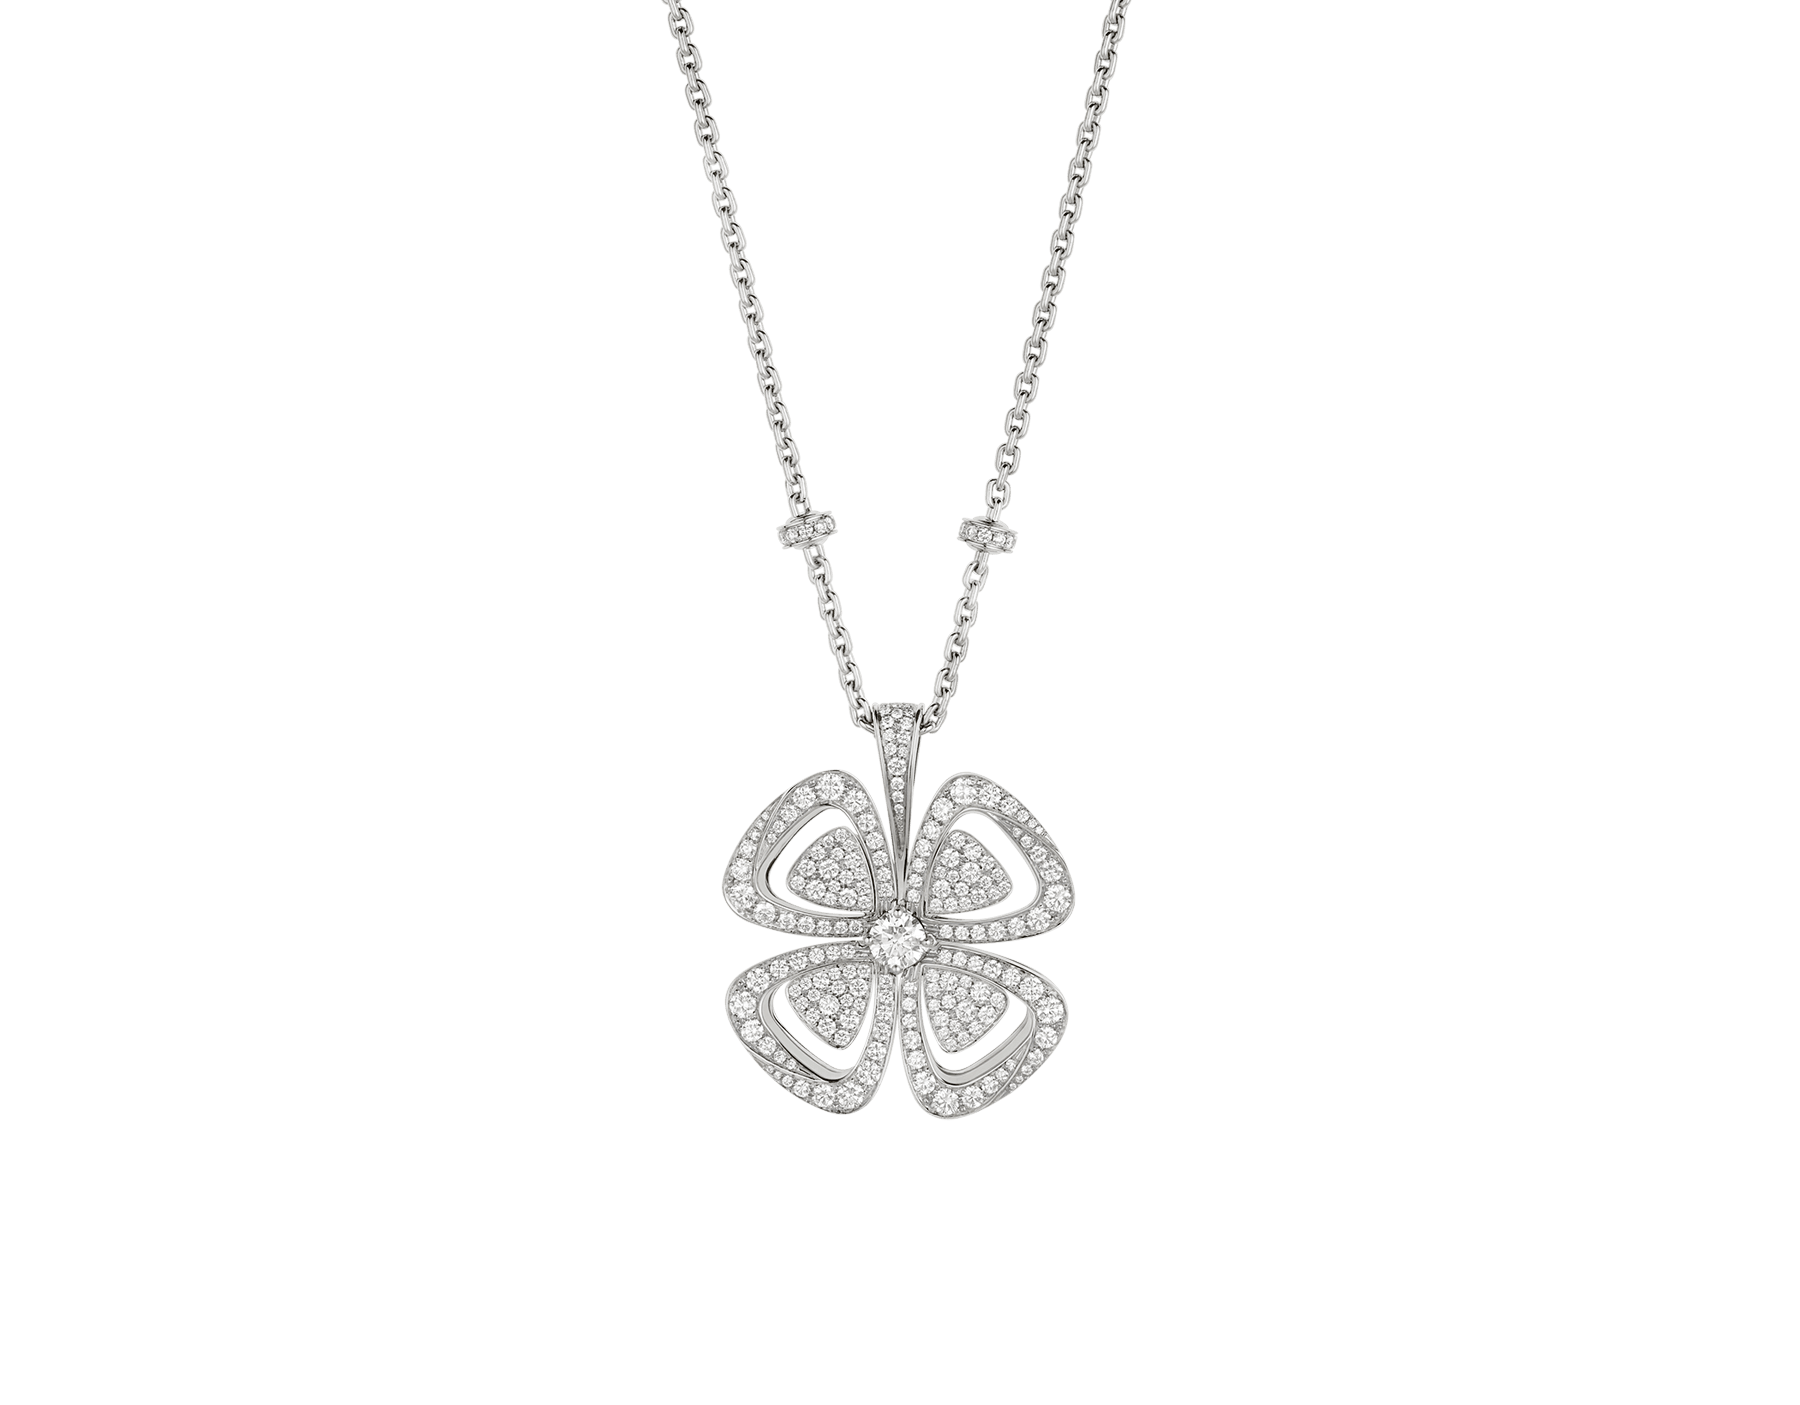 Fiorever 18 kt white gold necklace set with a central round brilliant-cut diamond (0.70 ct) and pavé diamonds (4.63 ct) 357219 image 1